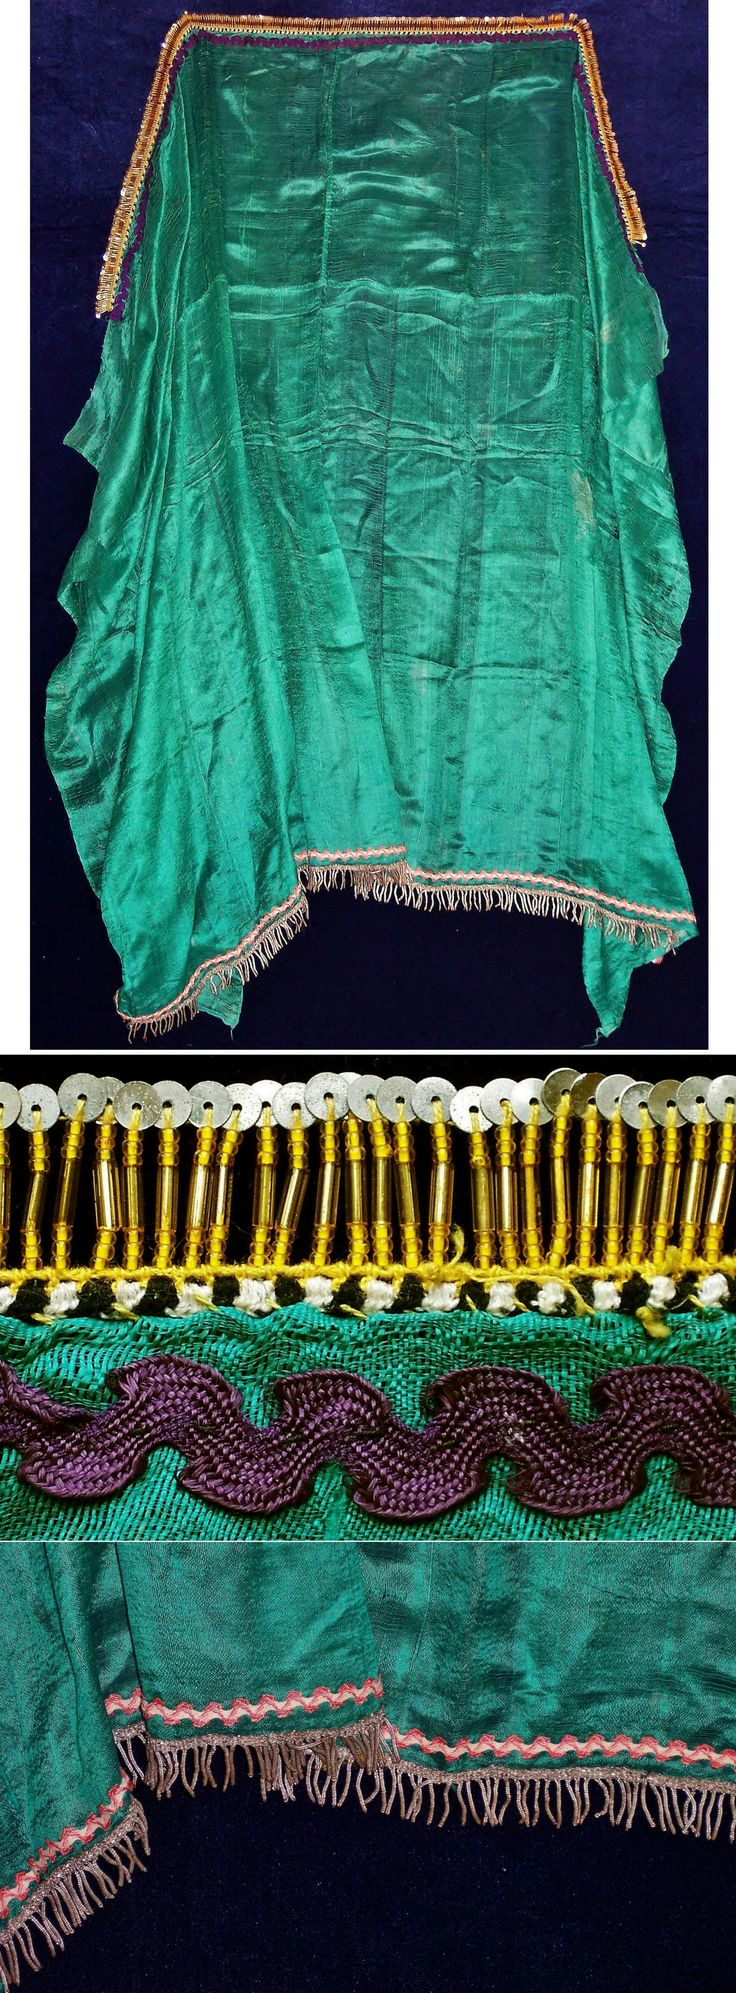 A silk 'yazma' (large scarf) from the Aydın-Ödemiş area.  Part of the bridal costume (urban - small city – style), from the Aydın-Ödemiş area.  Ca. 1925-1950.  Edged with glass beads & metal sequins (on the frontside) and with a metallic ribbon (small spirals) on the backside.  (Inv.nr. yaz063 - Kavak Costume Collection - Antwerpen/Belgium).